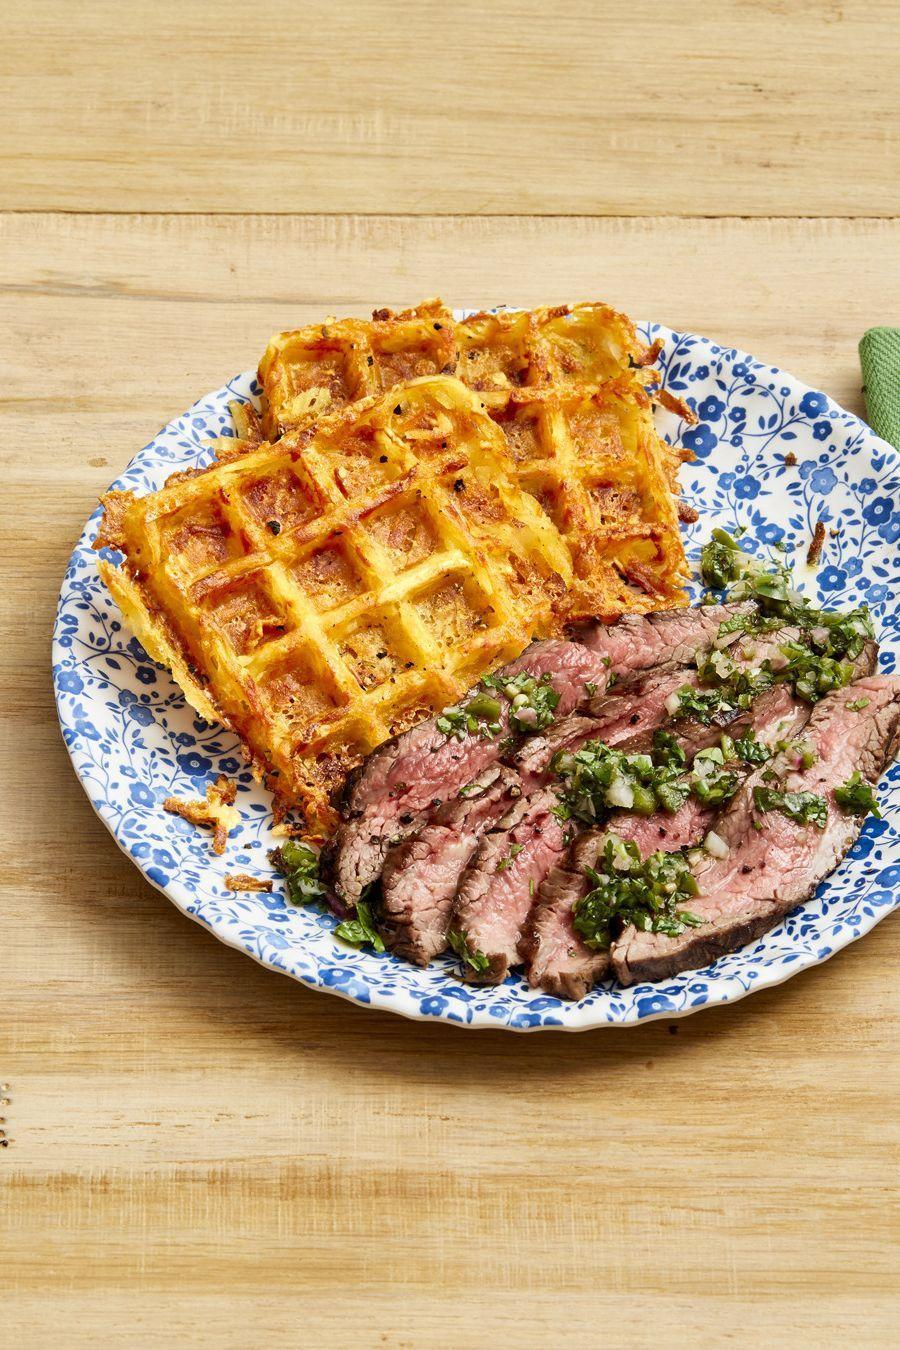 """<p>Crispy hash browns pair perfectly with juicy flank steak. Finish things off with a garlicky sauce loaded with fresh herbs—basil, mint, cilantro, and parsley. </p><p><strong><a href=""""https://www.thepioneerwoman.com/food-cooking/recipes/a32475948/flank-steak-with-cheesy-waffle-hash-browns-recipe/"""" rel=""""nofollow noopener"""" target=""""_blank"""" data-ylk=""""slk:Get the recipe"""" class=""""link rapid-noclick-resp"""">Get the recipe</a>.</strong></p><p><a class=""""link rapid-noclick-resp"""" href=""""https://go.redirectingat.com?id=74968X1596630&url=https%3A%2F%2Fwww.walmart.com%2Fbrowse%2Fhome%2Fthe-pioneer-woman-dishes%2F4044_623679_639999_7373615&sref=https%3A%2F%2Fwww.thepioneerwoman.com%2Ffood-cooking%2Fmeals-menus%2Fg35191871%2Fsteak-dinner-recipes%2F"""" rel=""""nofollow noopener"""" target=""""_blank"""" data-ylk=""""slk:SHOP DISHES"""">SHOP DISHES</a></p>"""